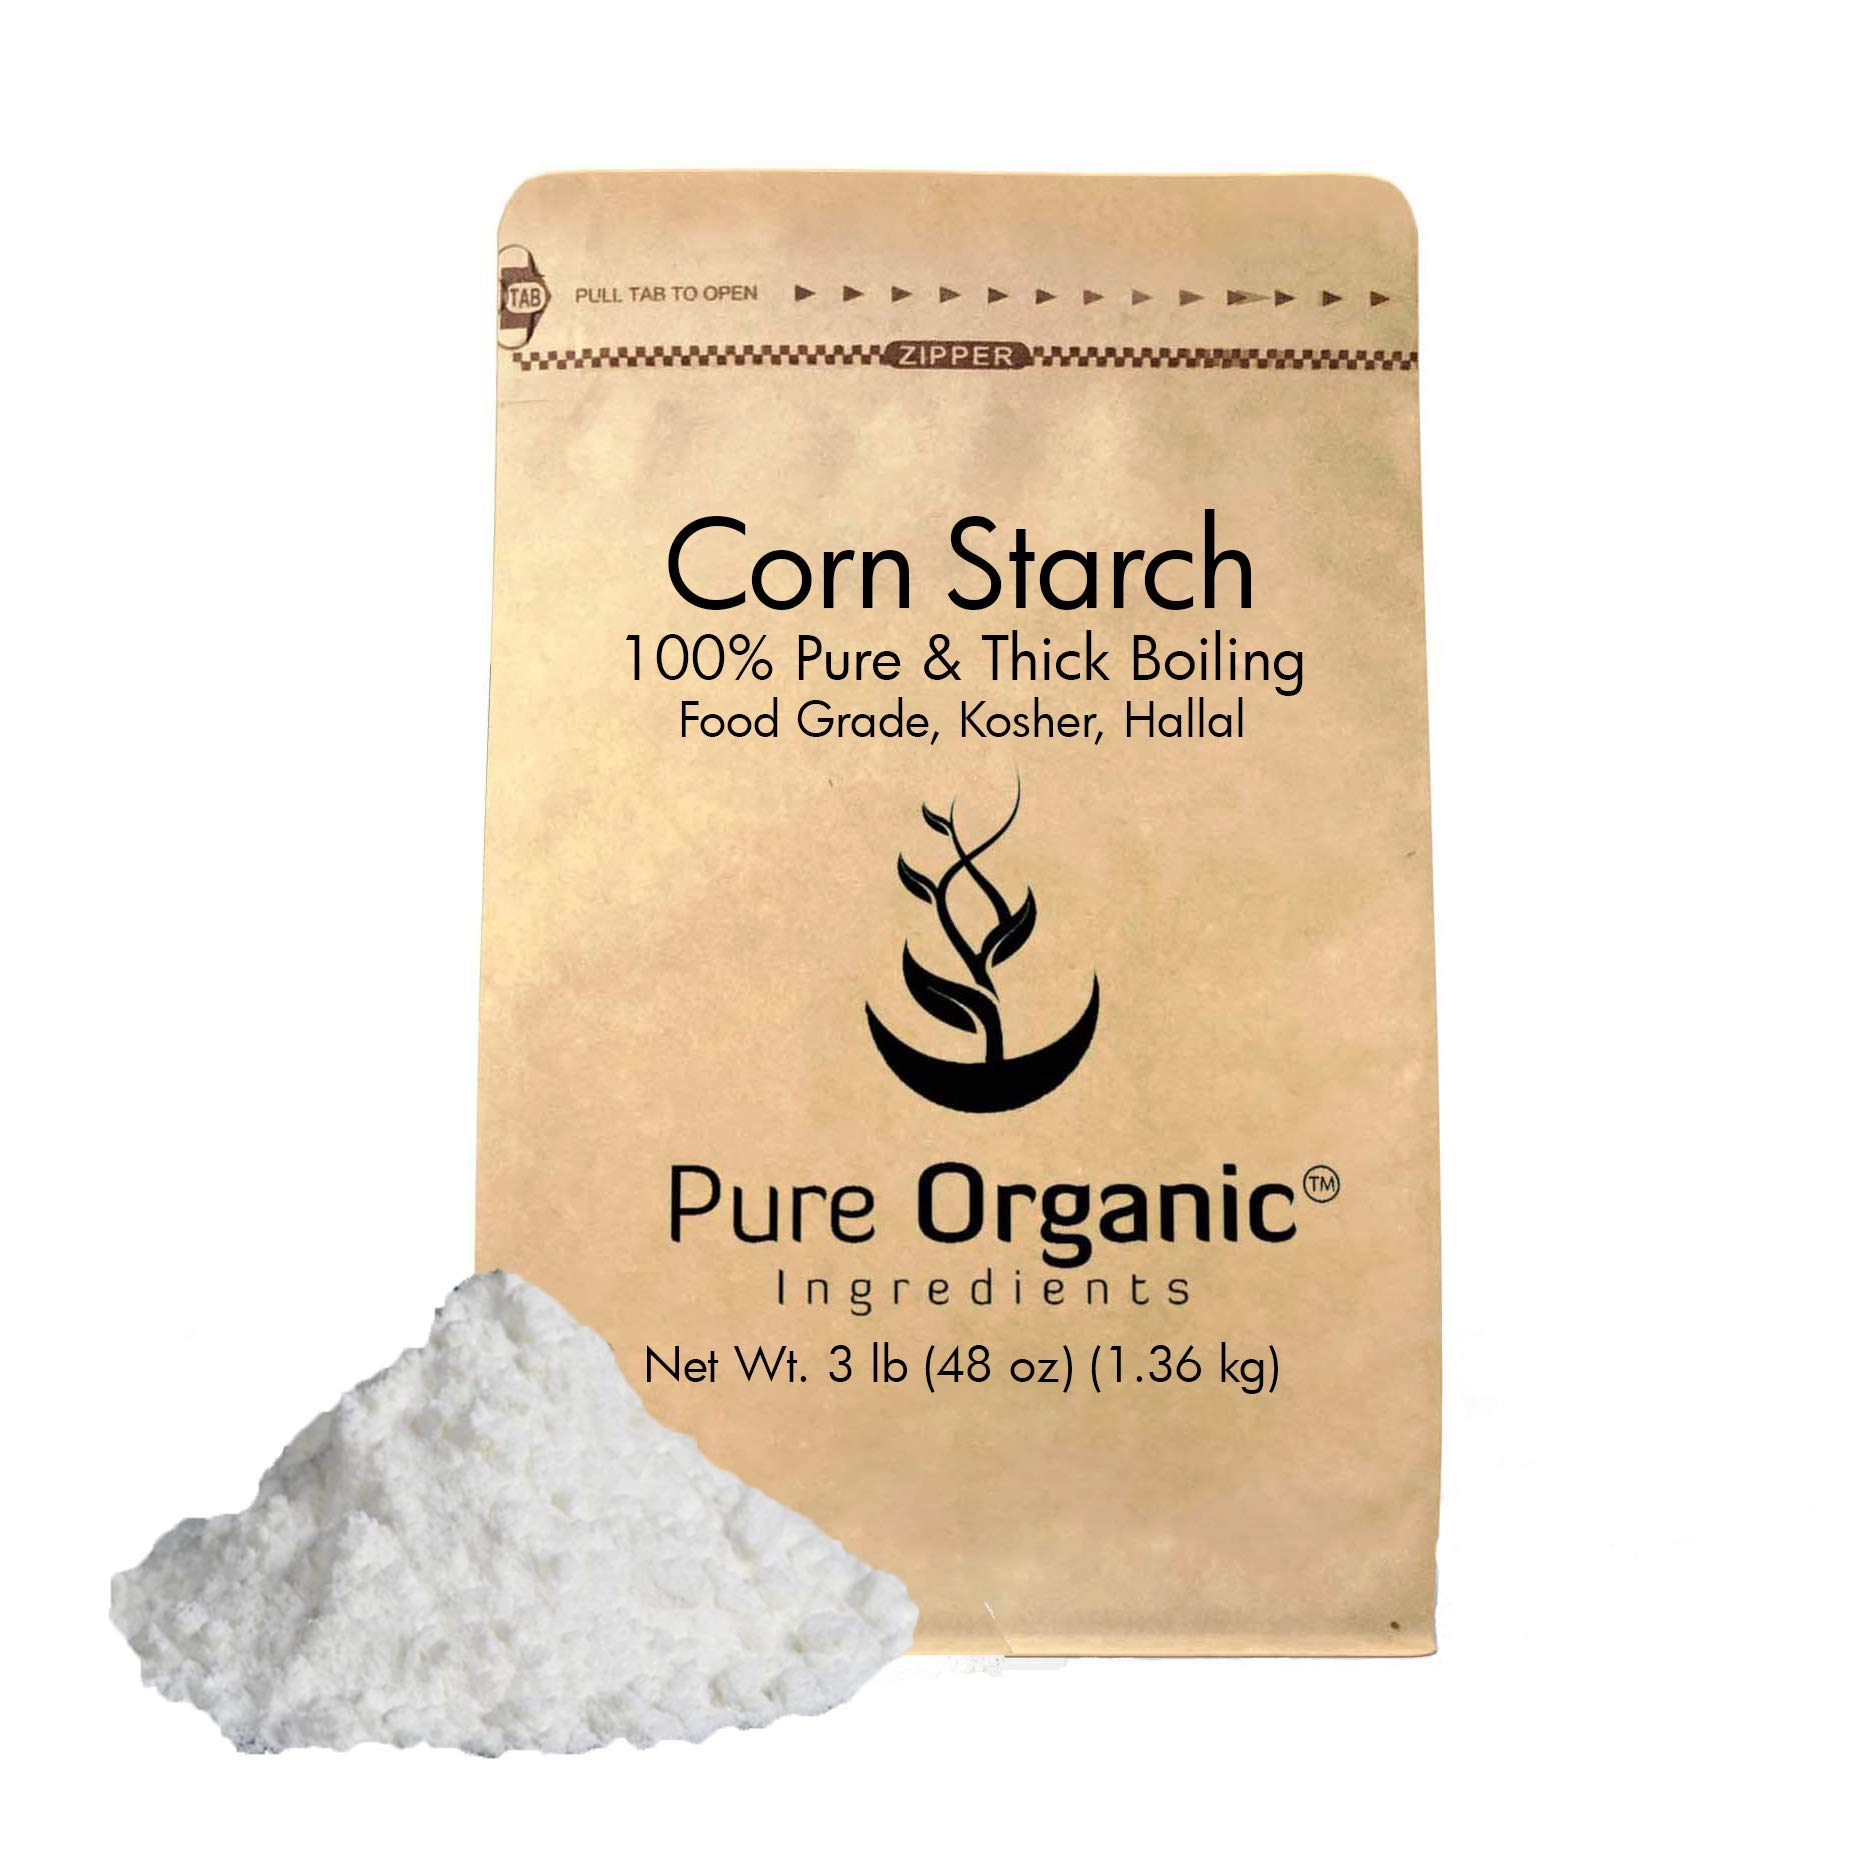 Pure Organic Ingredients Corn Starch, (3 lb (48 oz)) Thickener For Sauces Soup, & Gravy, Highest Quality, Kosher, USP & Food Grade, Vegan, Gluten Free (Also available in 4 oz, 8 oz, 1 lb, & 2 lb)